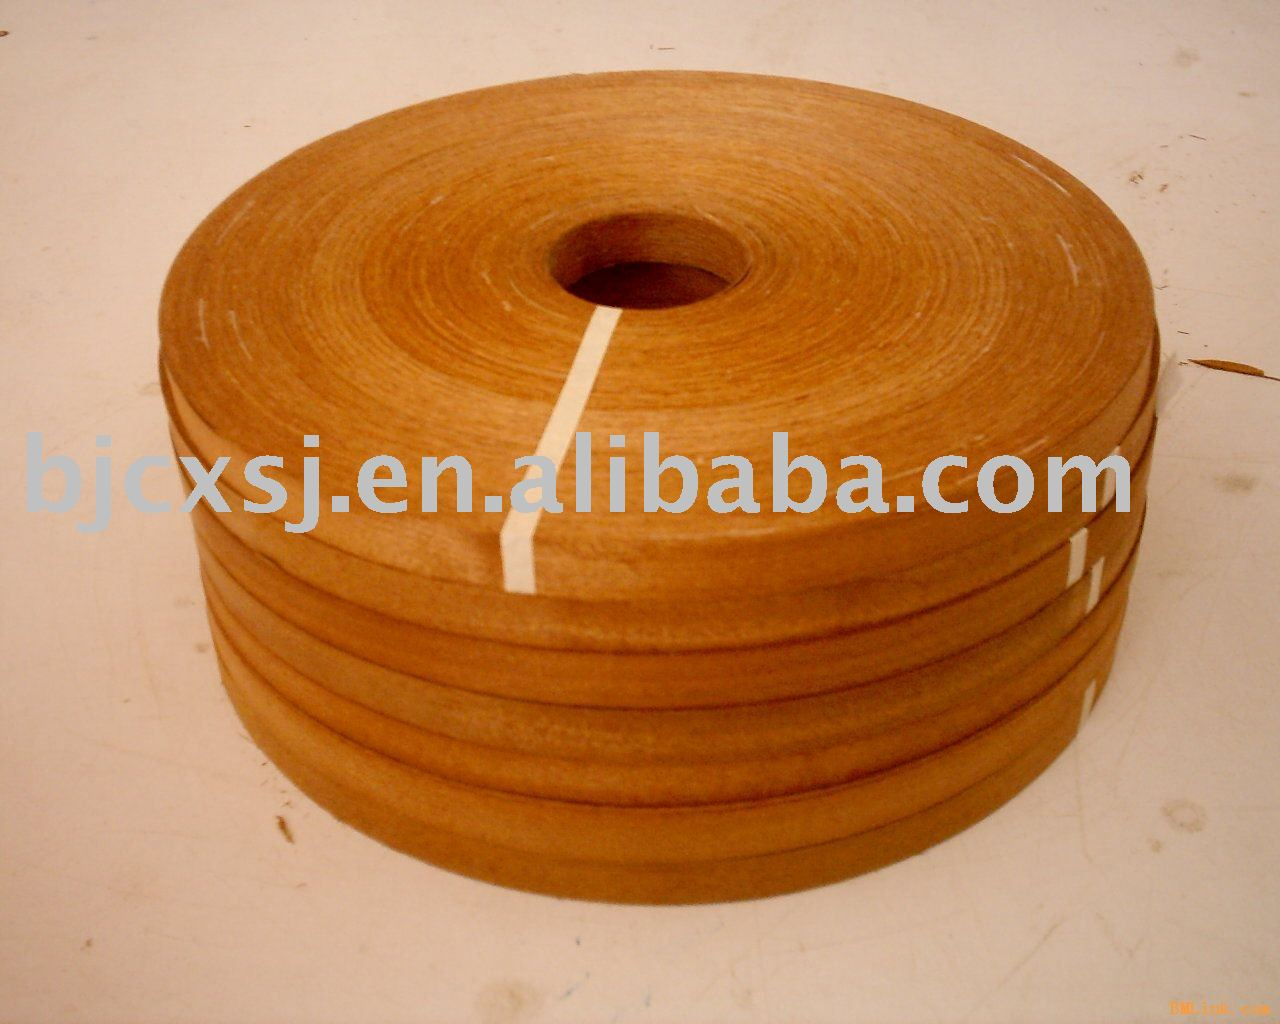 fittings for furniture/pvcedge banding wood grain color